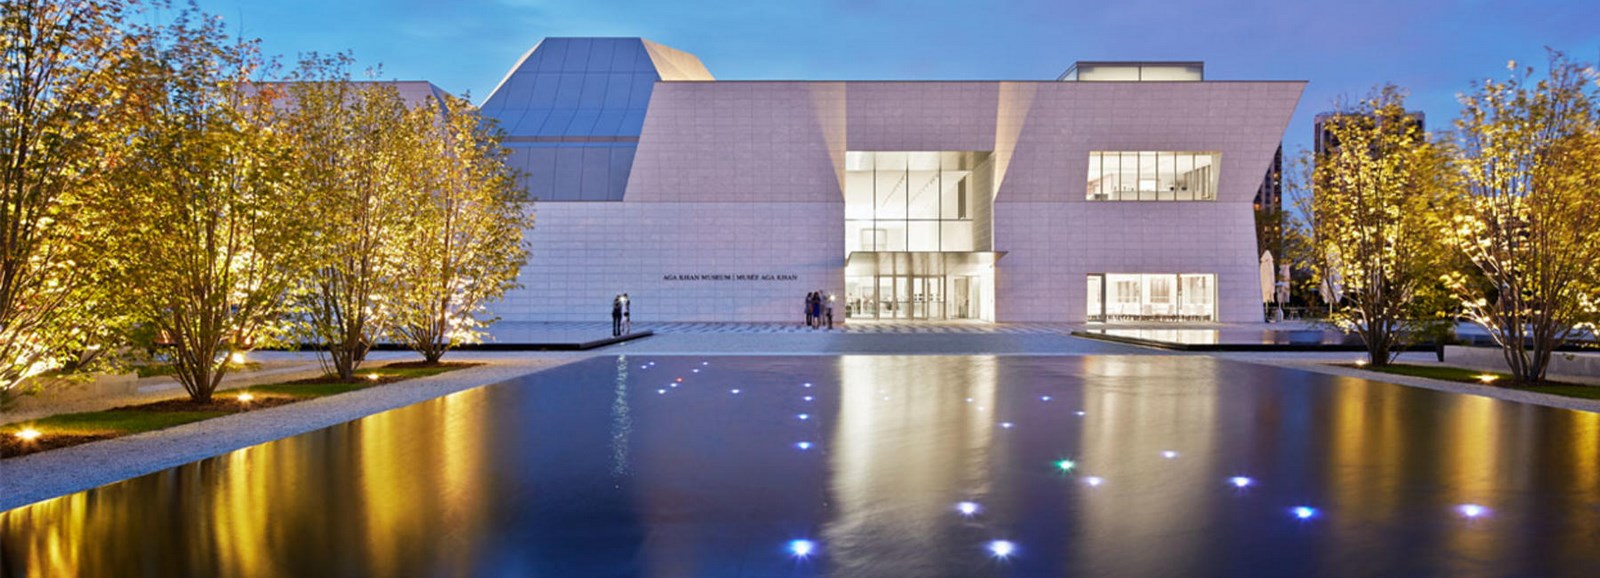 100 Best Architecture Projects of the 21st Century - Aga Khan Museum